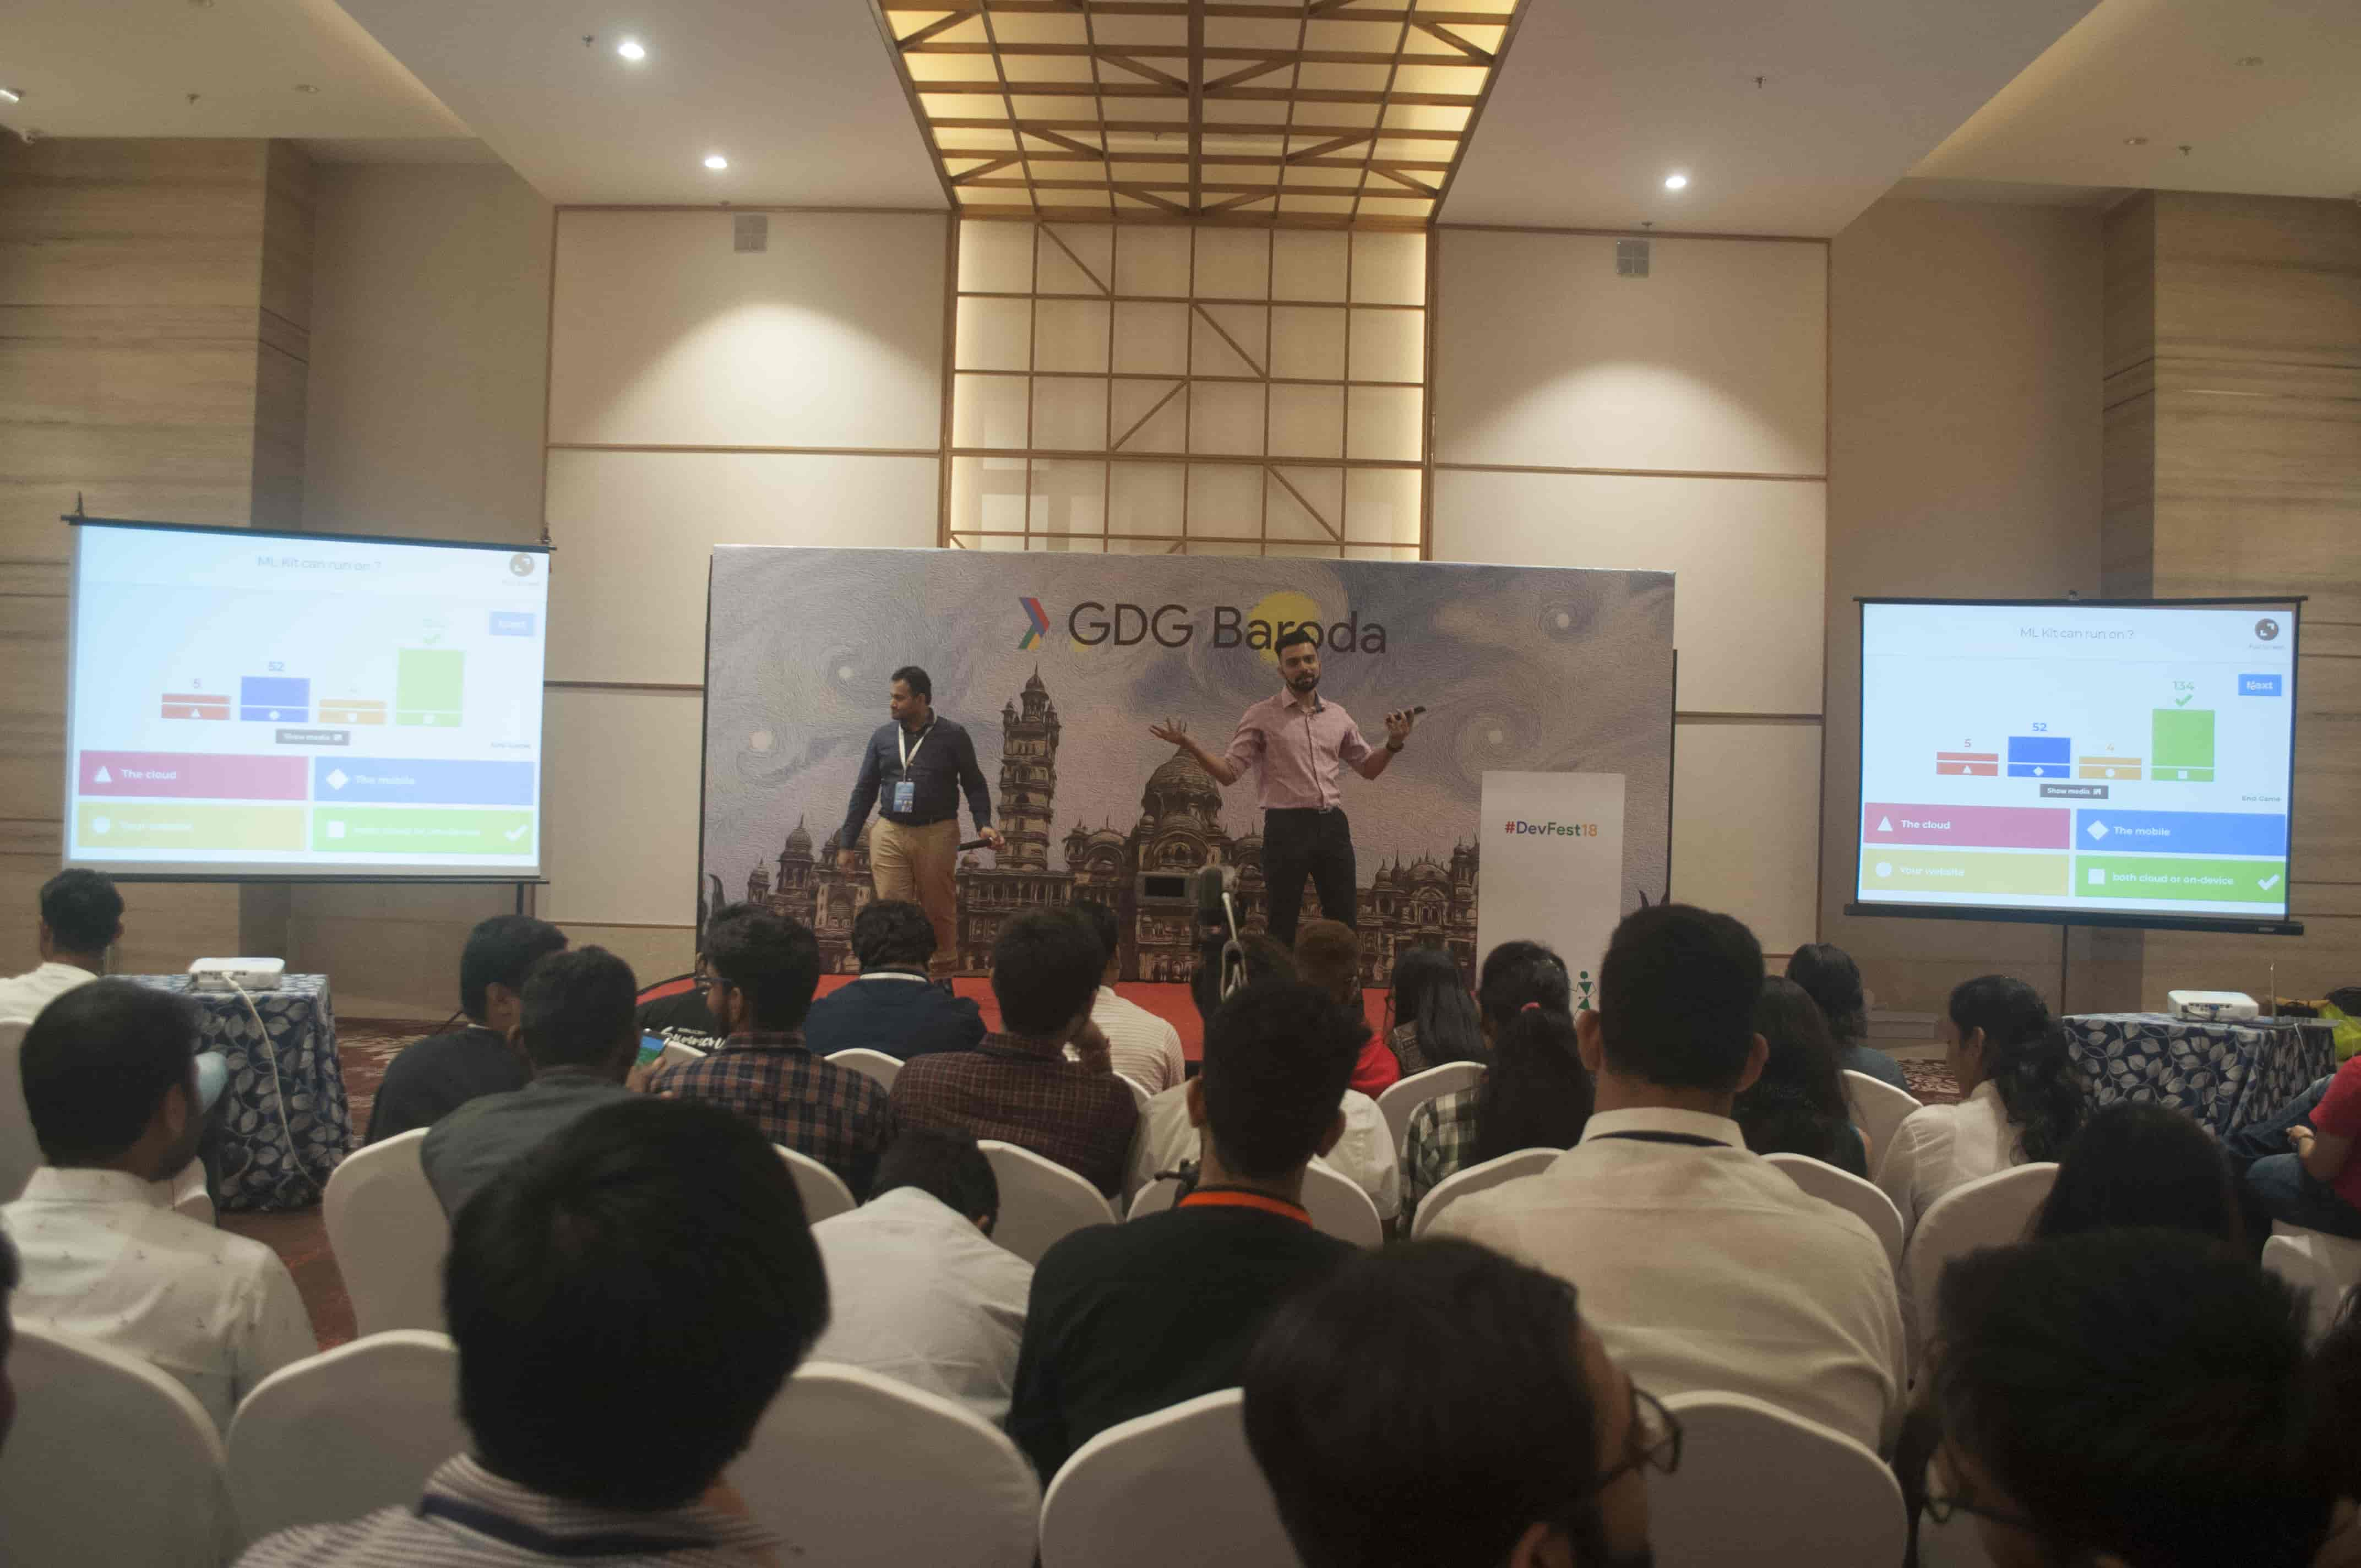 GDG Baroda | An open-for-all and diverse developer community